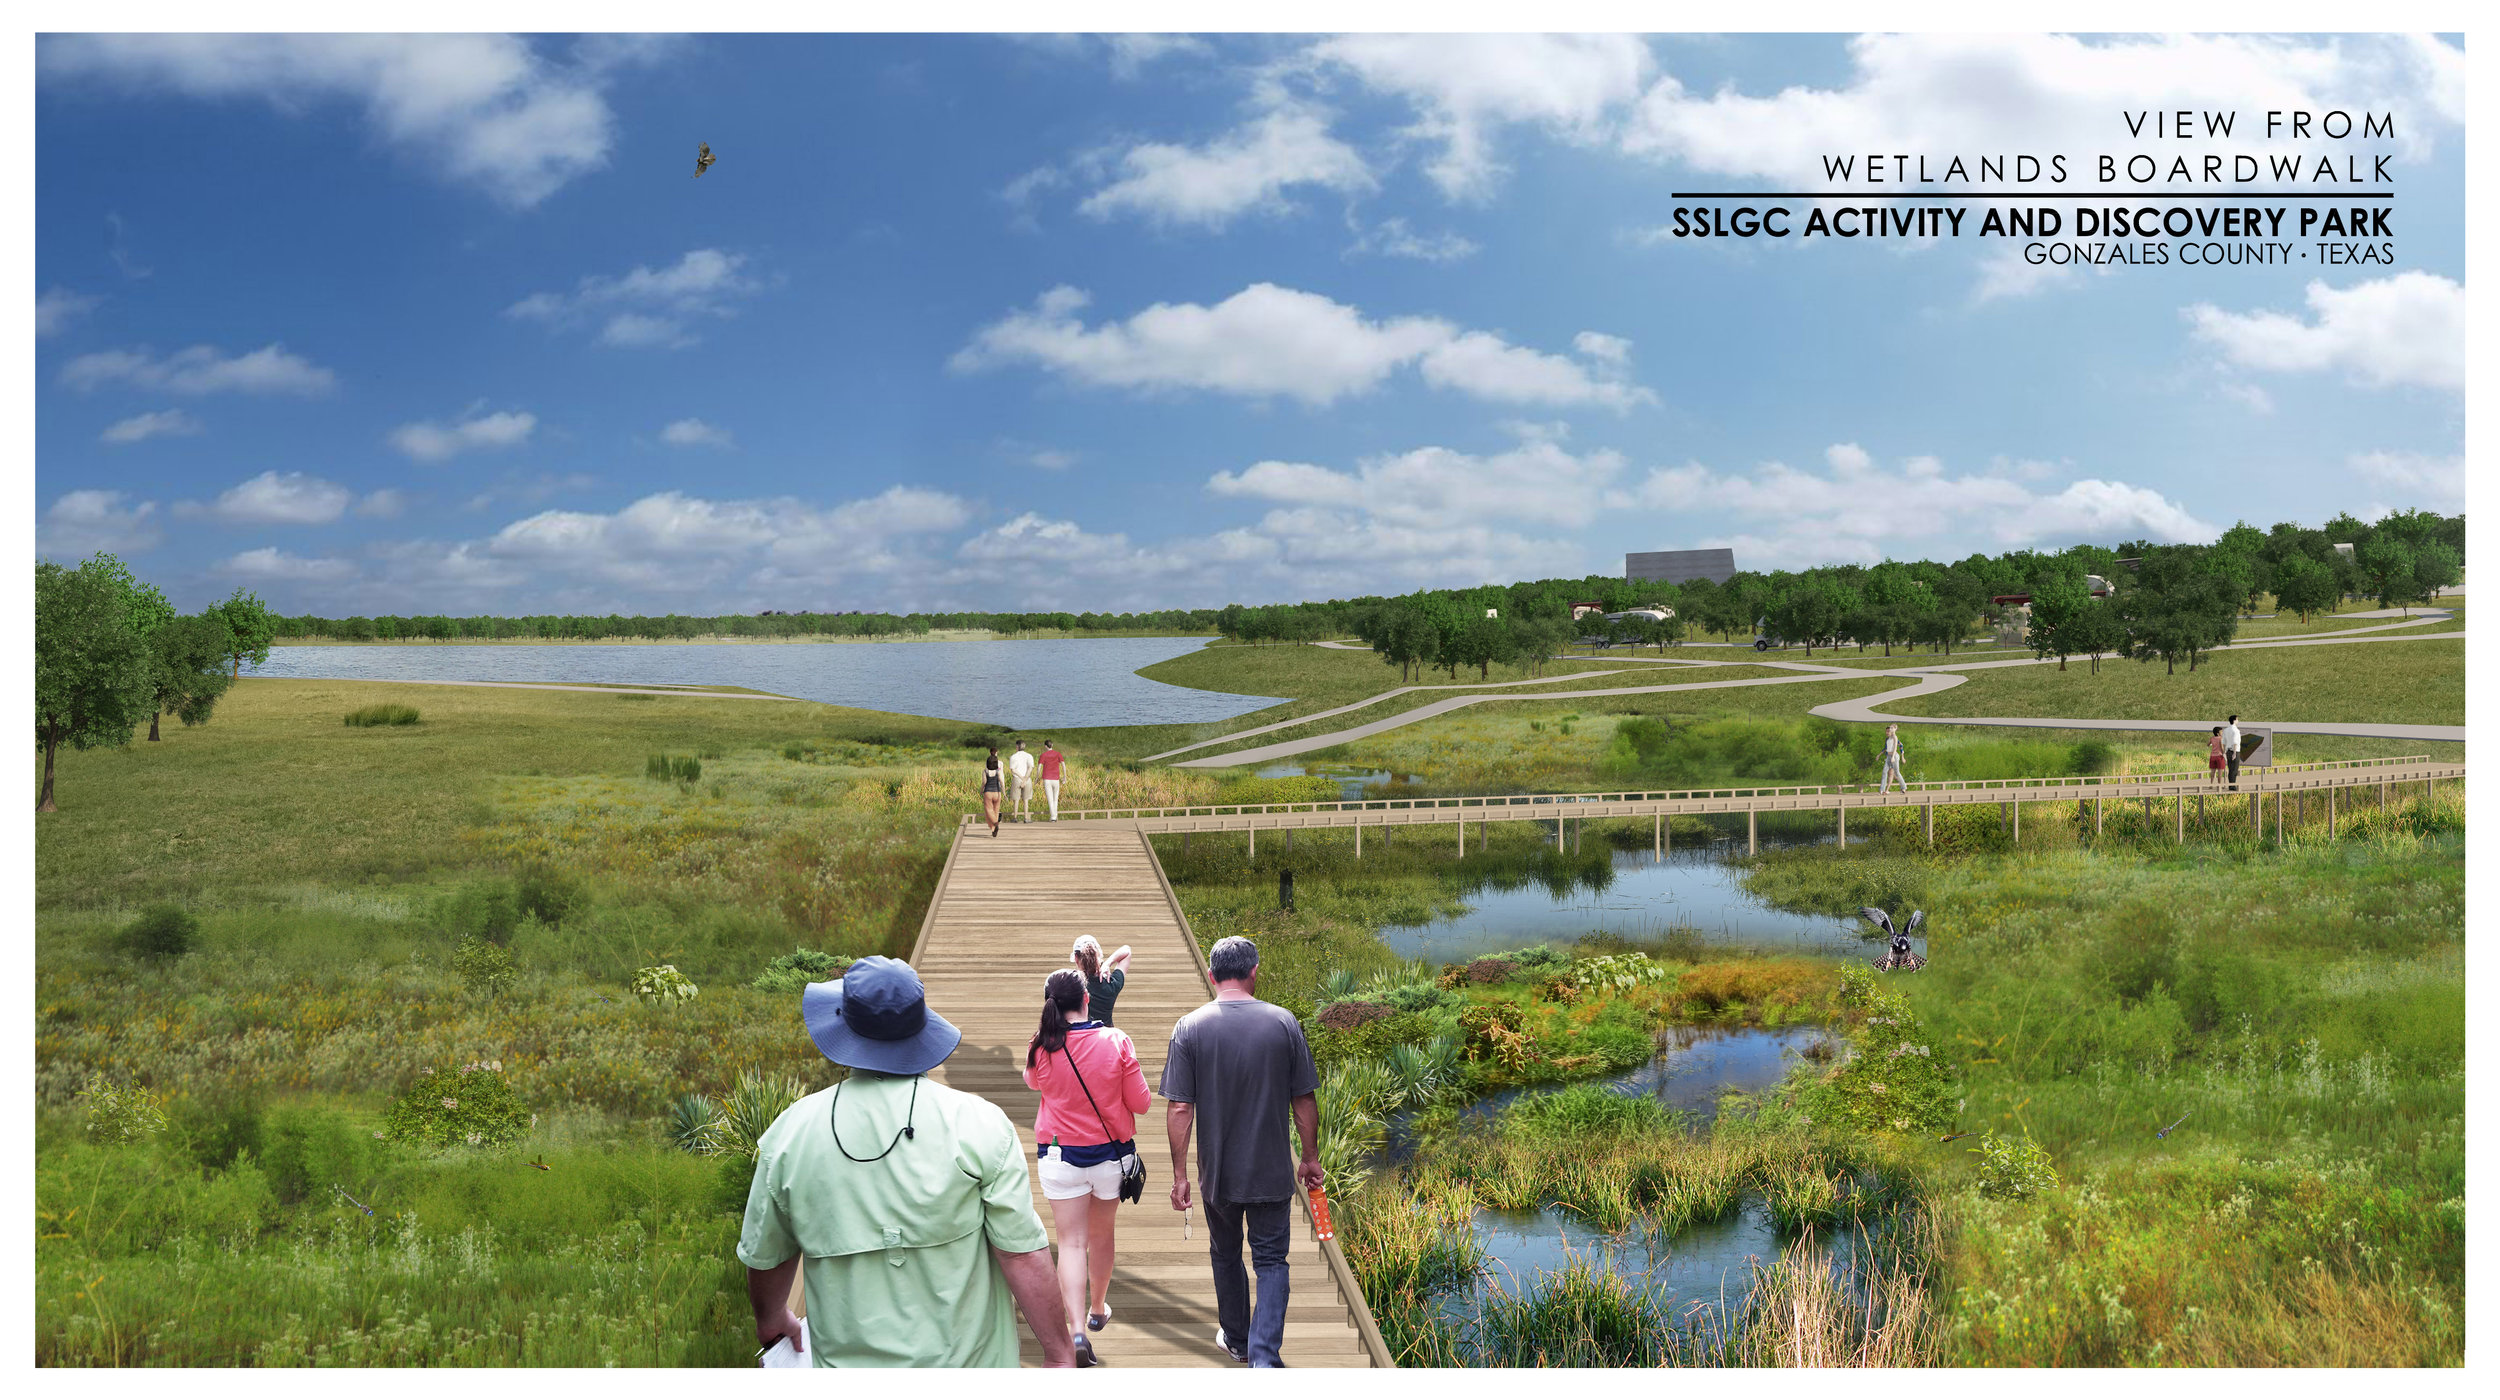 SSLGC ACTIVITY AND DISCOVERY PARK